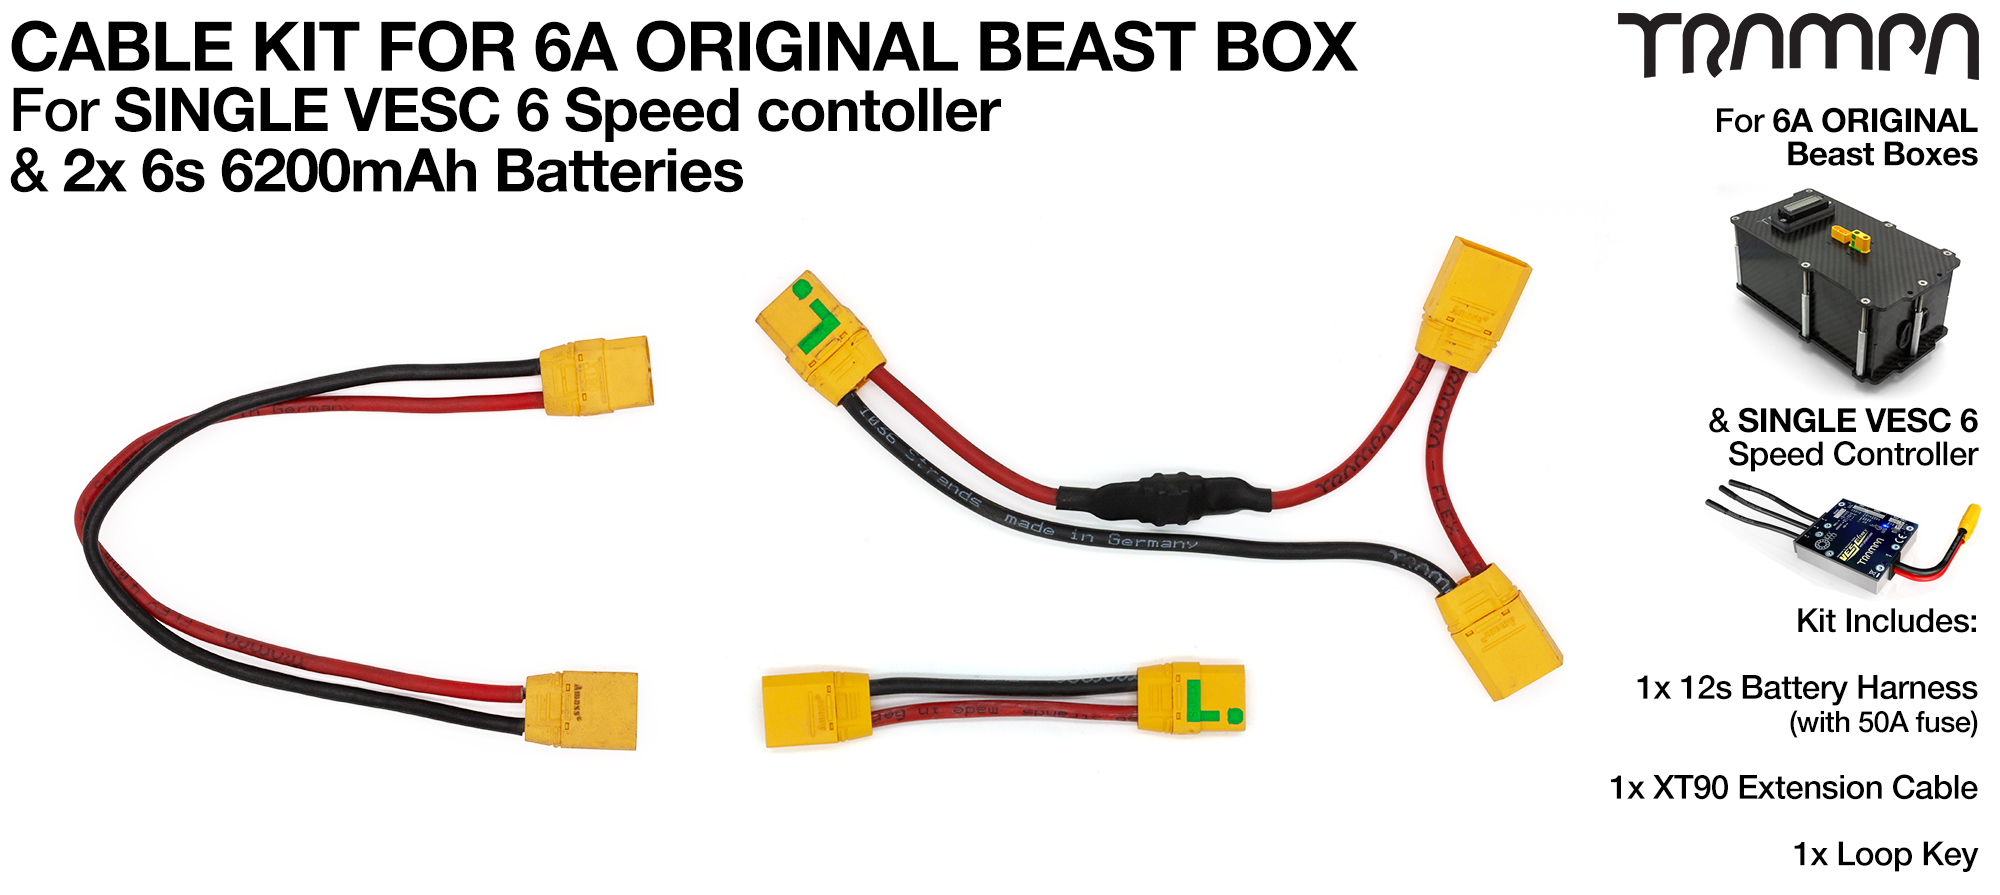 2019 BEAST BOX Single VESC Cable Kit